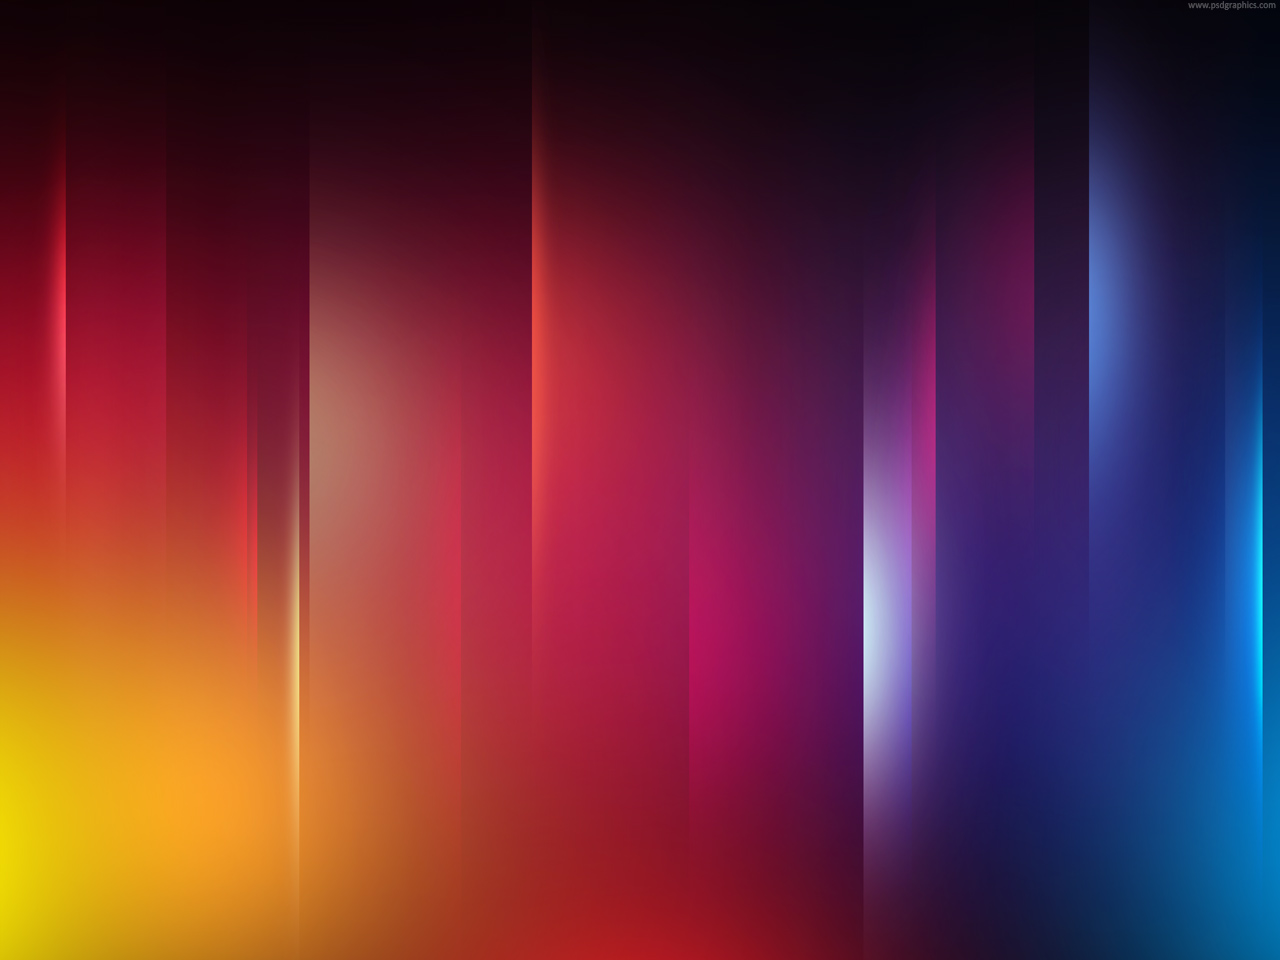 Medium size preview (1280x960px): Colorful lines background